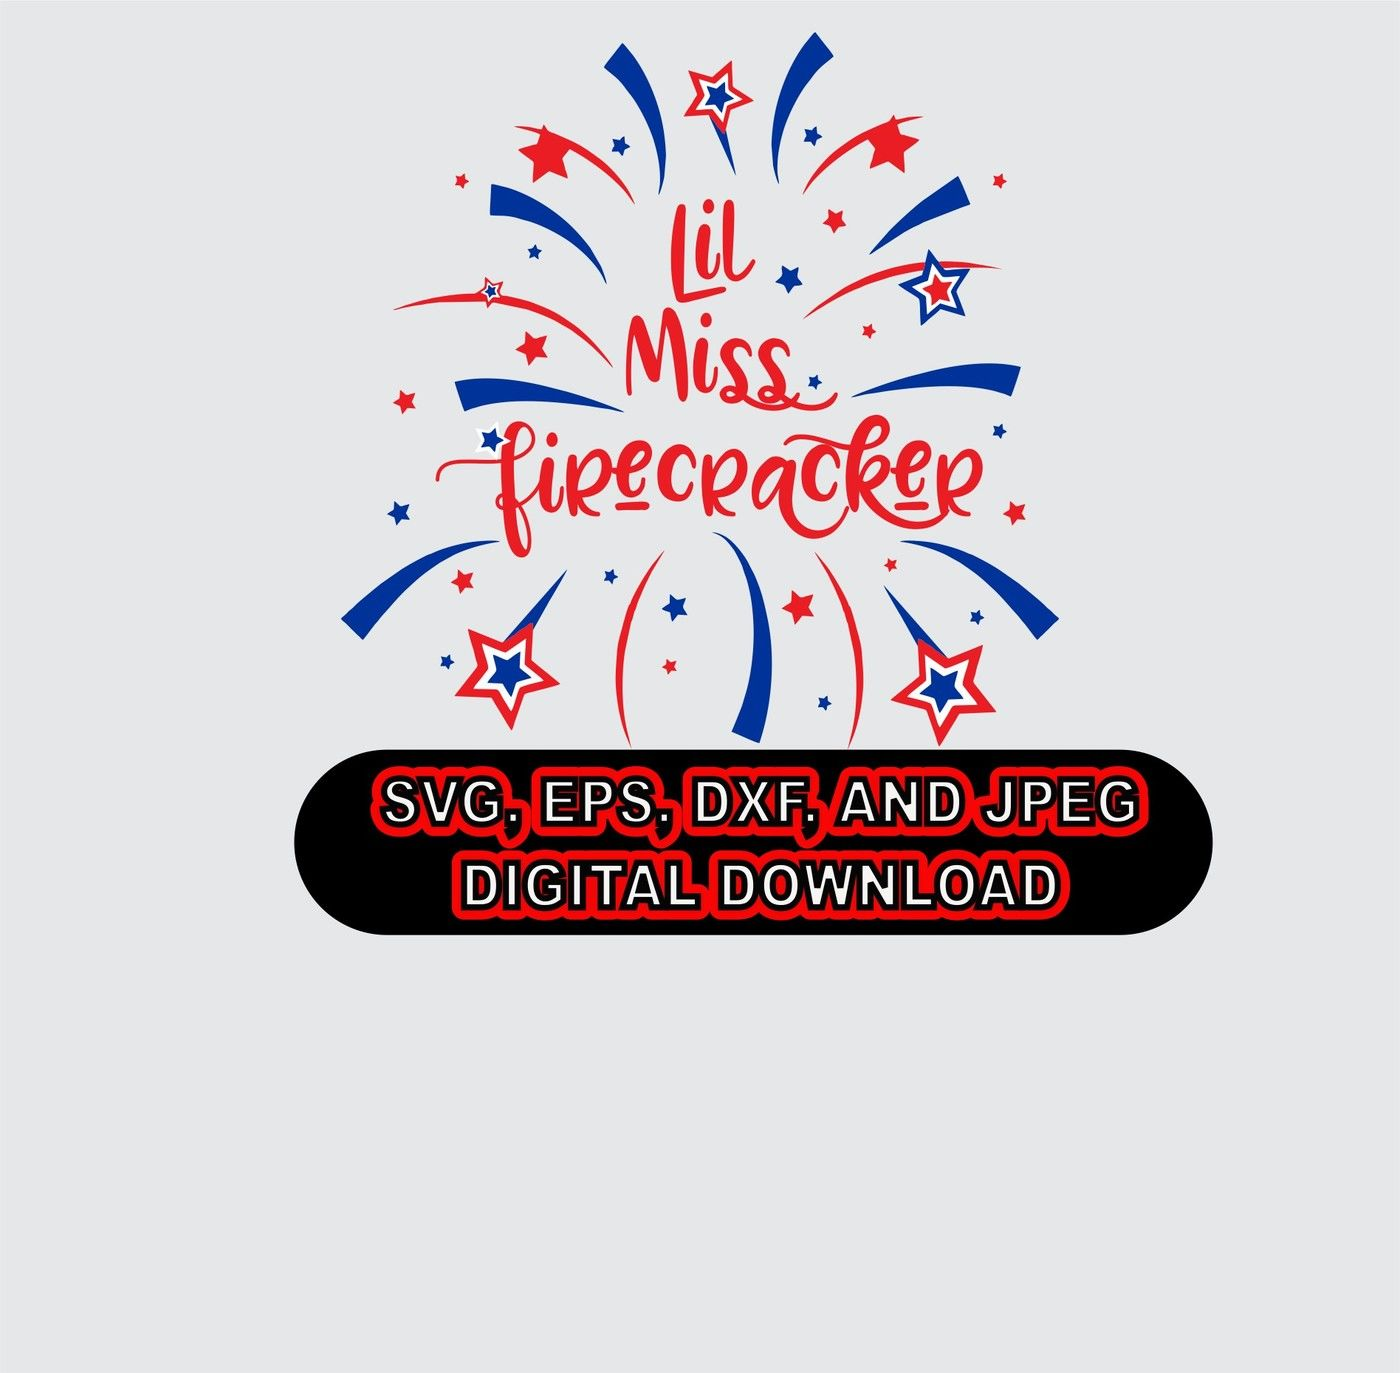 4th Of July Svg Dxf Eps And Jpg Files For Cutting Machines Cameo Or Cricut July 4th Svg America Svg Patriotic Svg By Digital Files Mania Thehungryjpeg Com